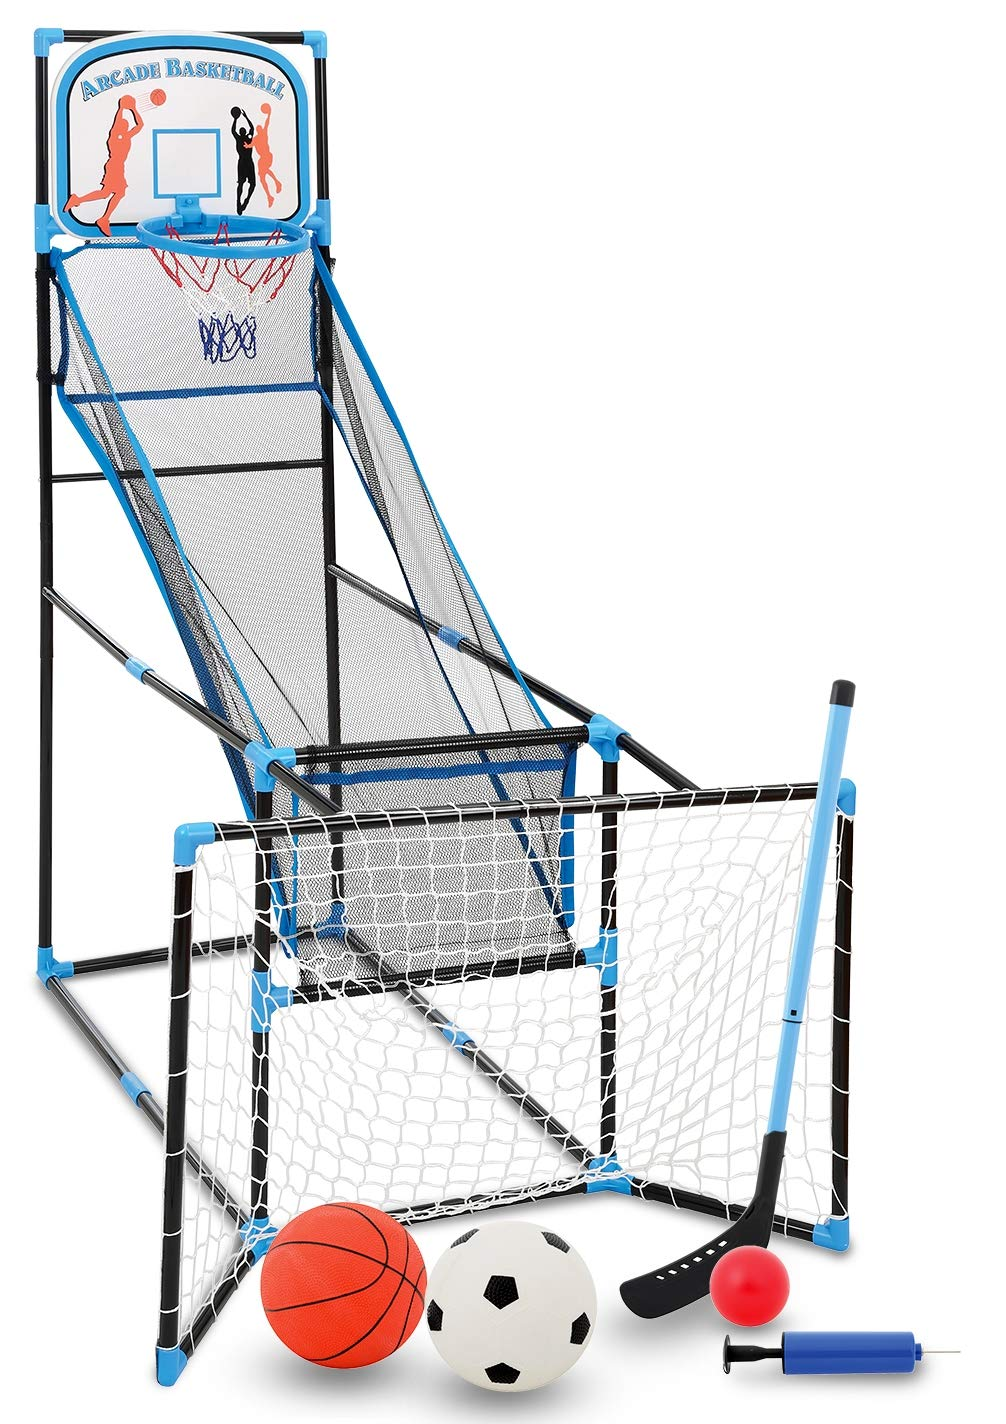 Bundaloo 3 in 1 Arcade Game | Basketball, Soccer, and Hockey Kids Toys | Fun Outdoor and Indoor Ball Games for Boys, Girls, Toddler | Includes 3 Balls, Backboard Hoop, Net Goal, Stick, and Air Pump by Bundaloo (Image #1)